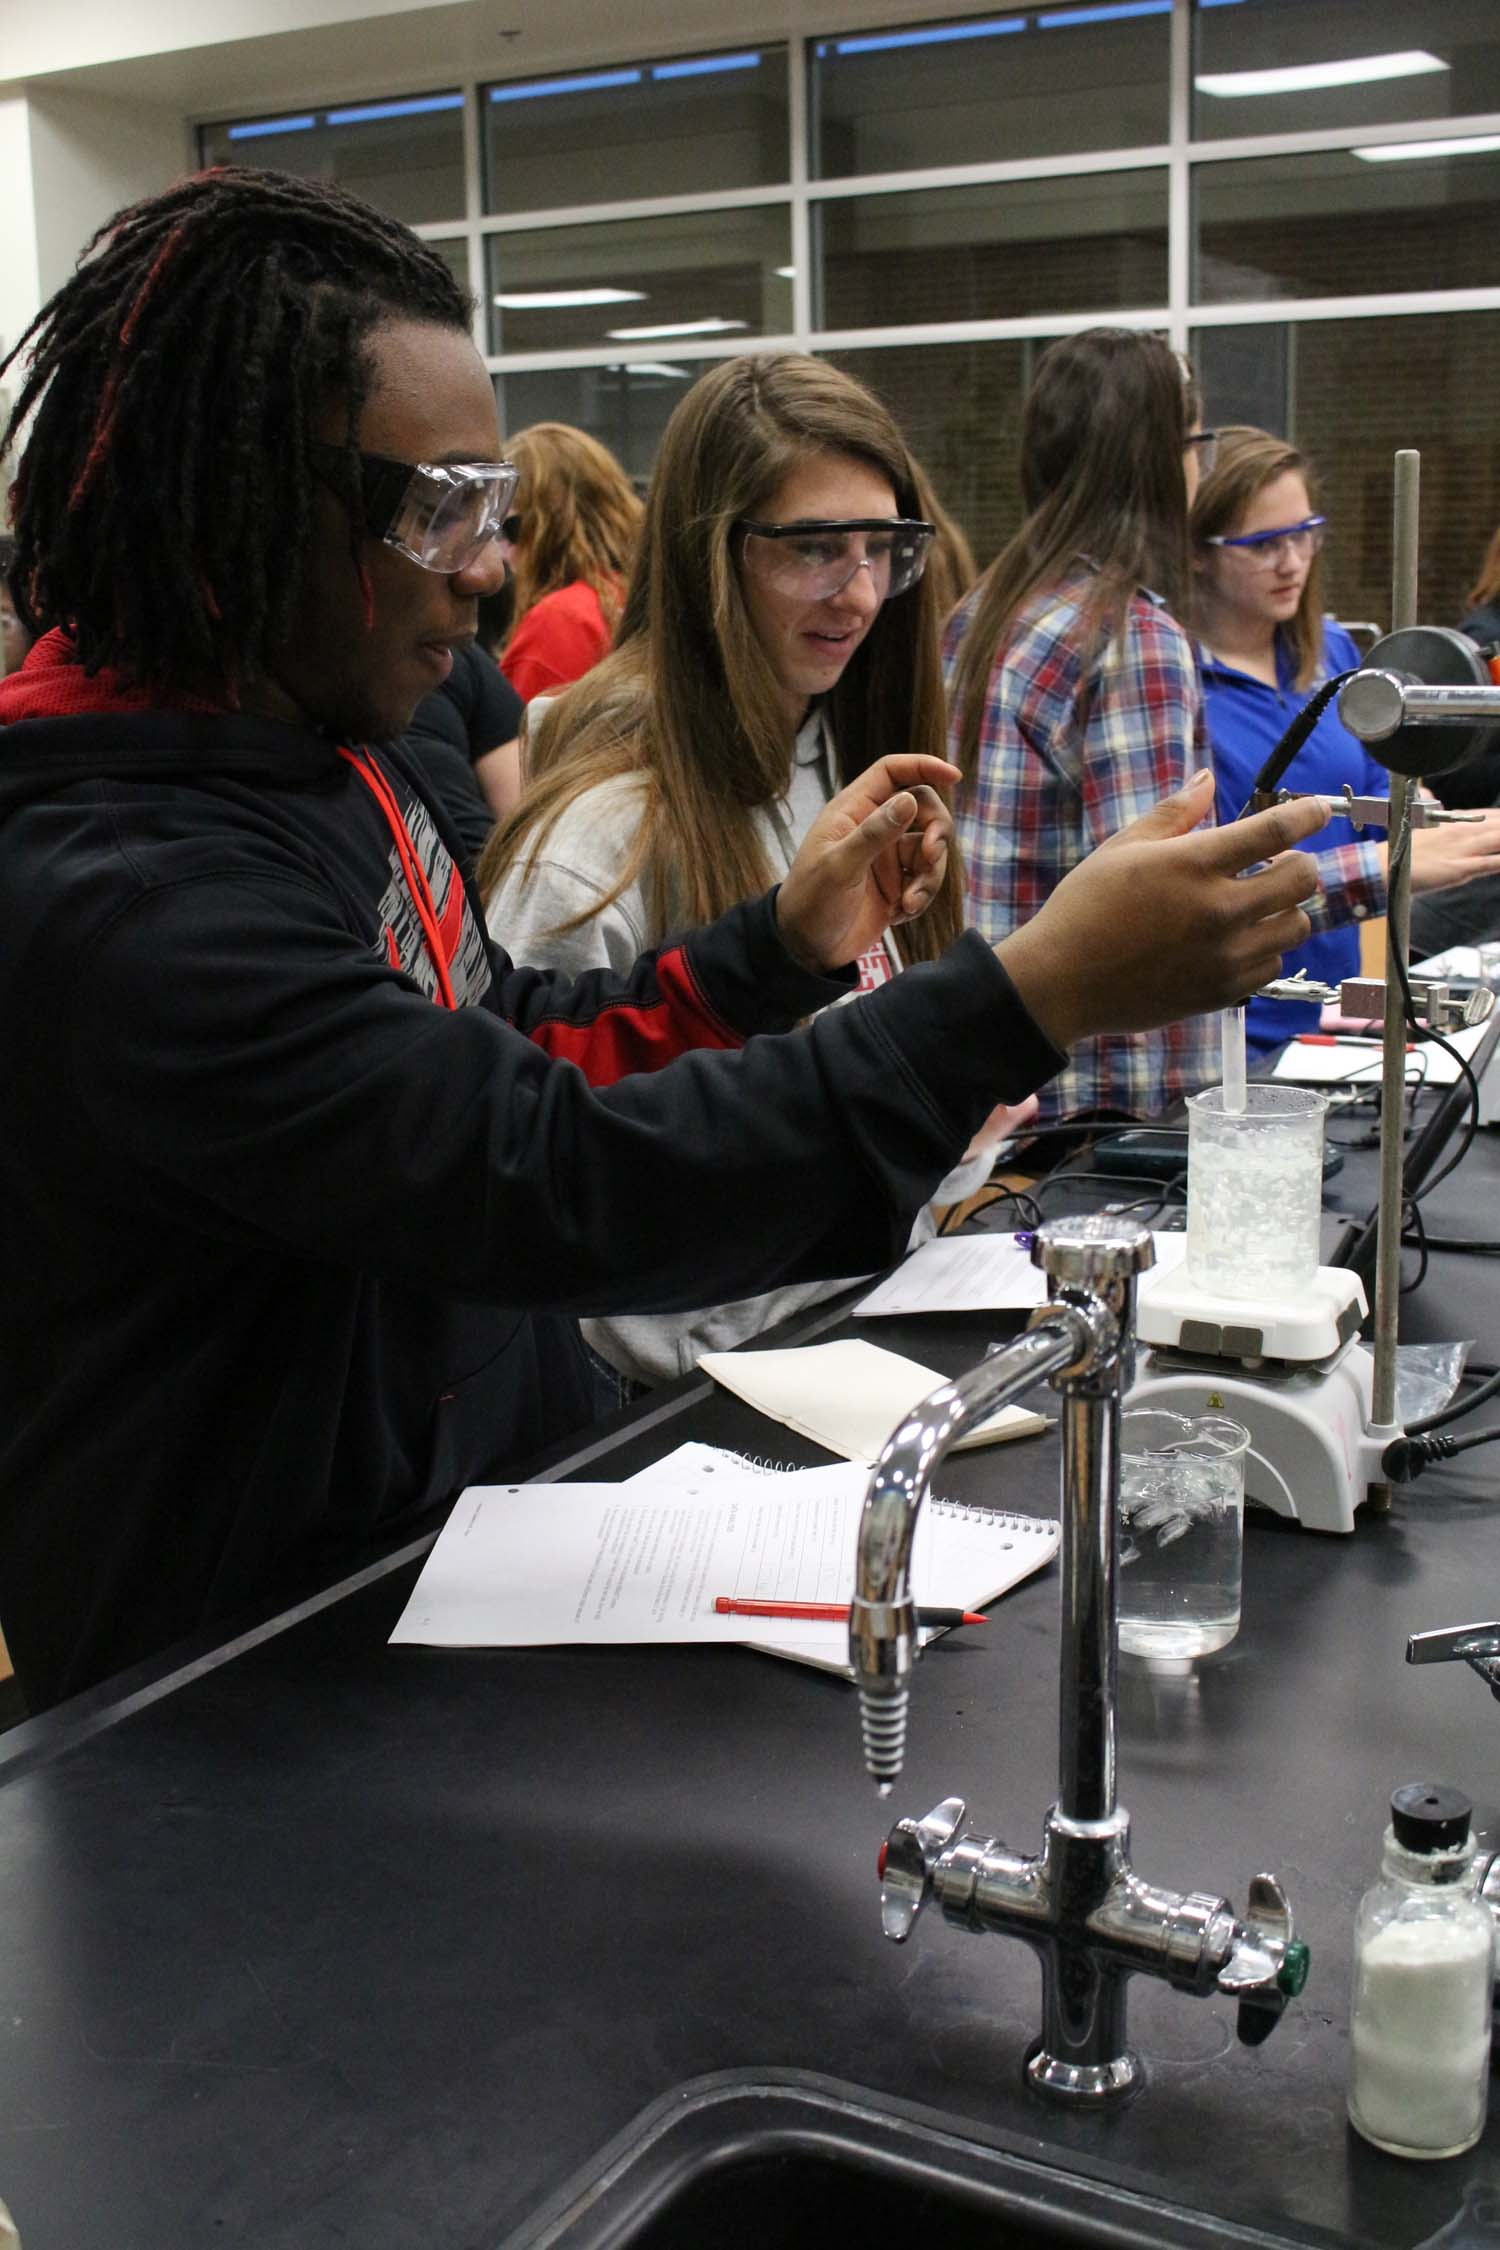 Senior Cardell Tucker and junior Lexi Van Baale measure the temperature of water for a lab on Jan. 22.